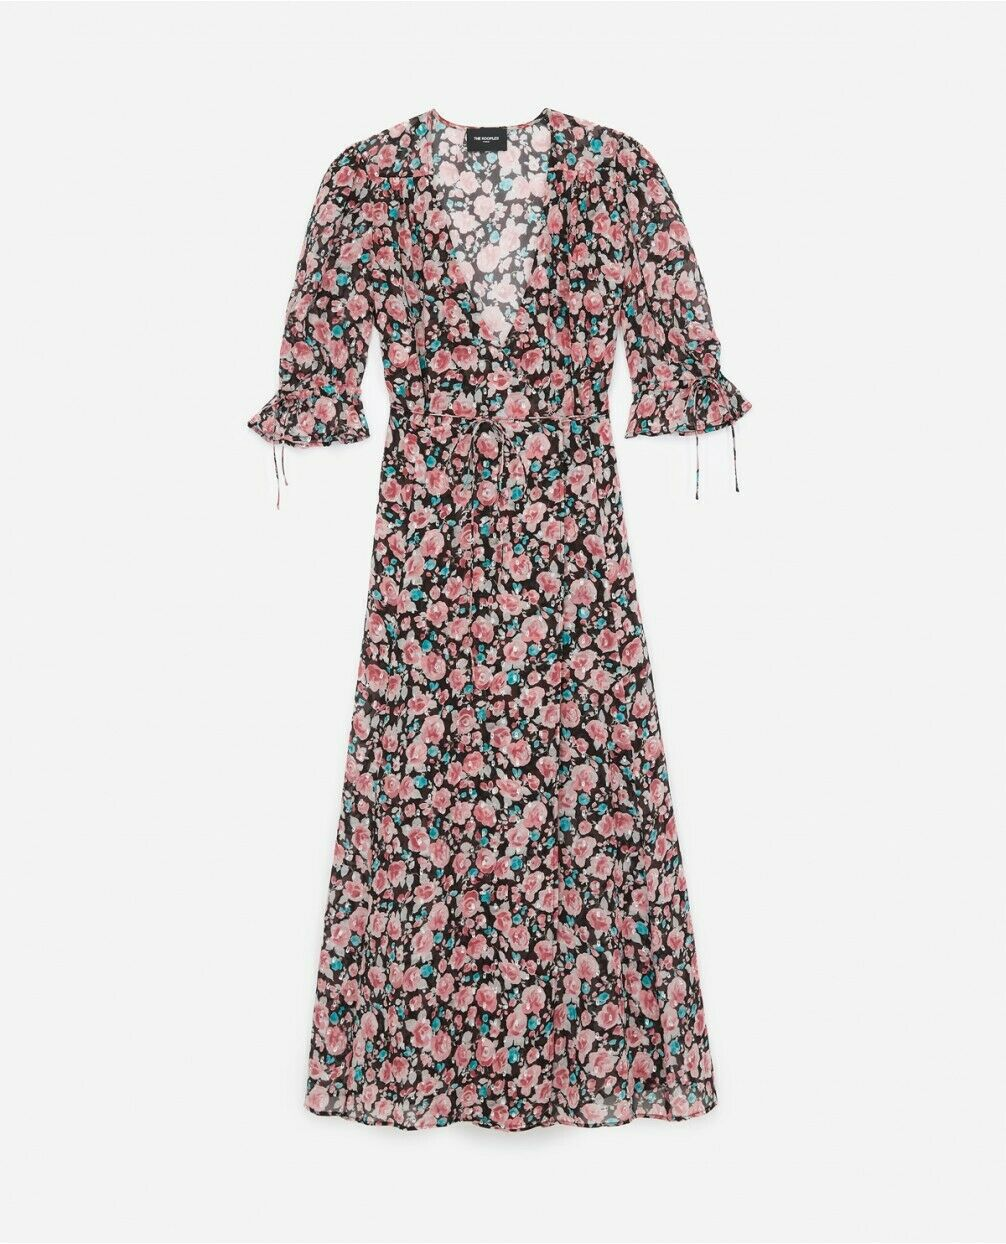 The Kooples Candy Floral Wrap Midi Dress Dress Dress Size 2 934a2b